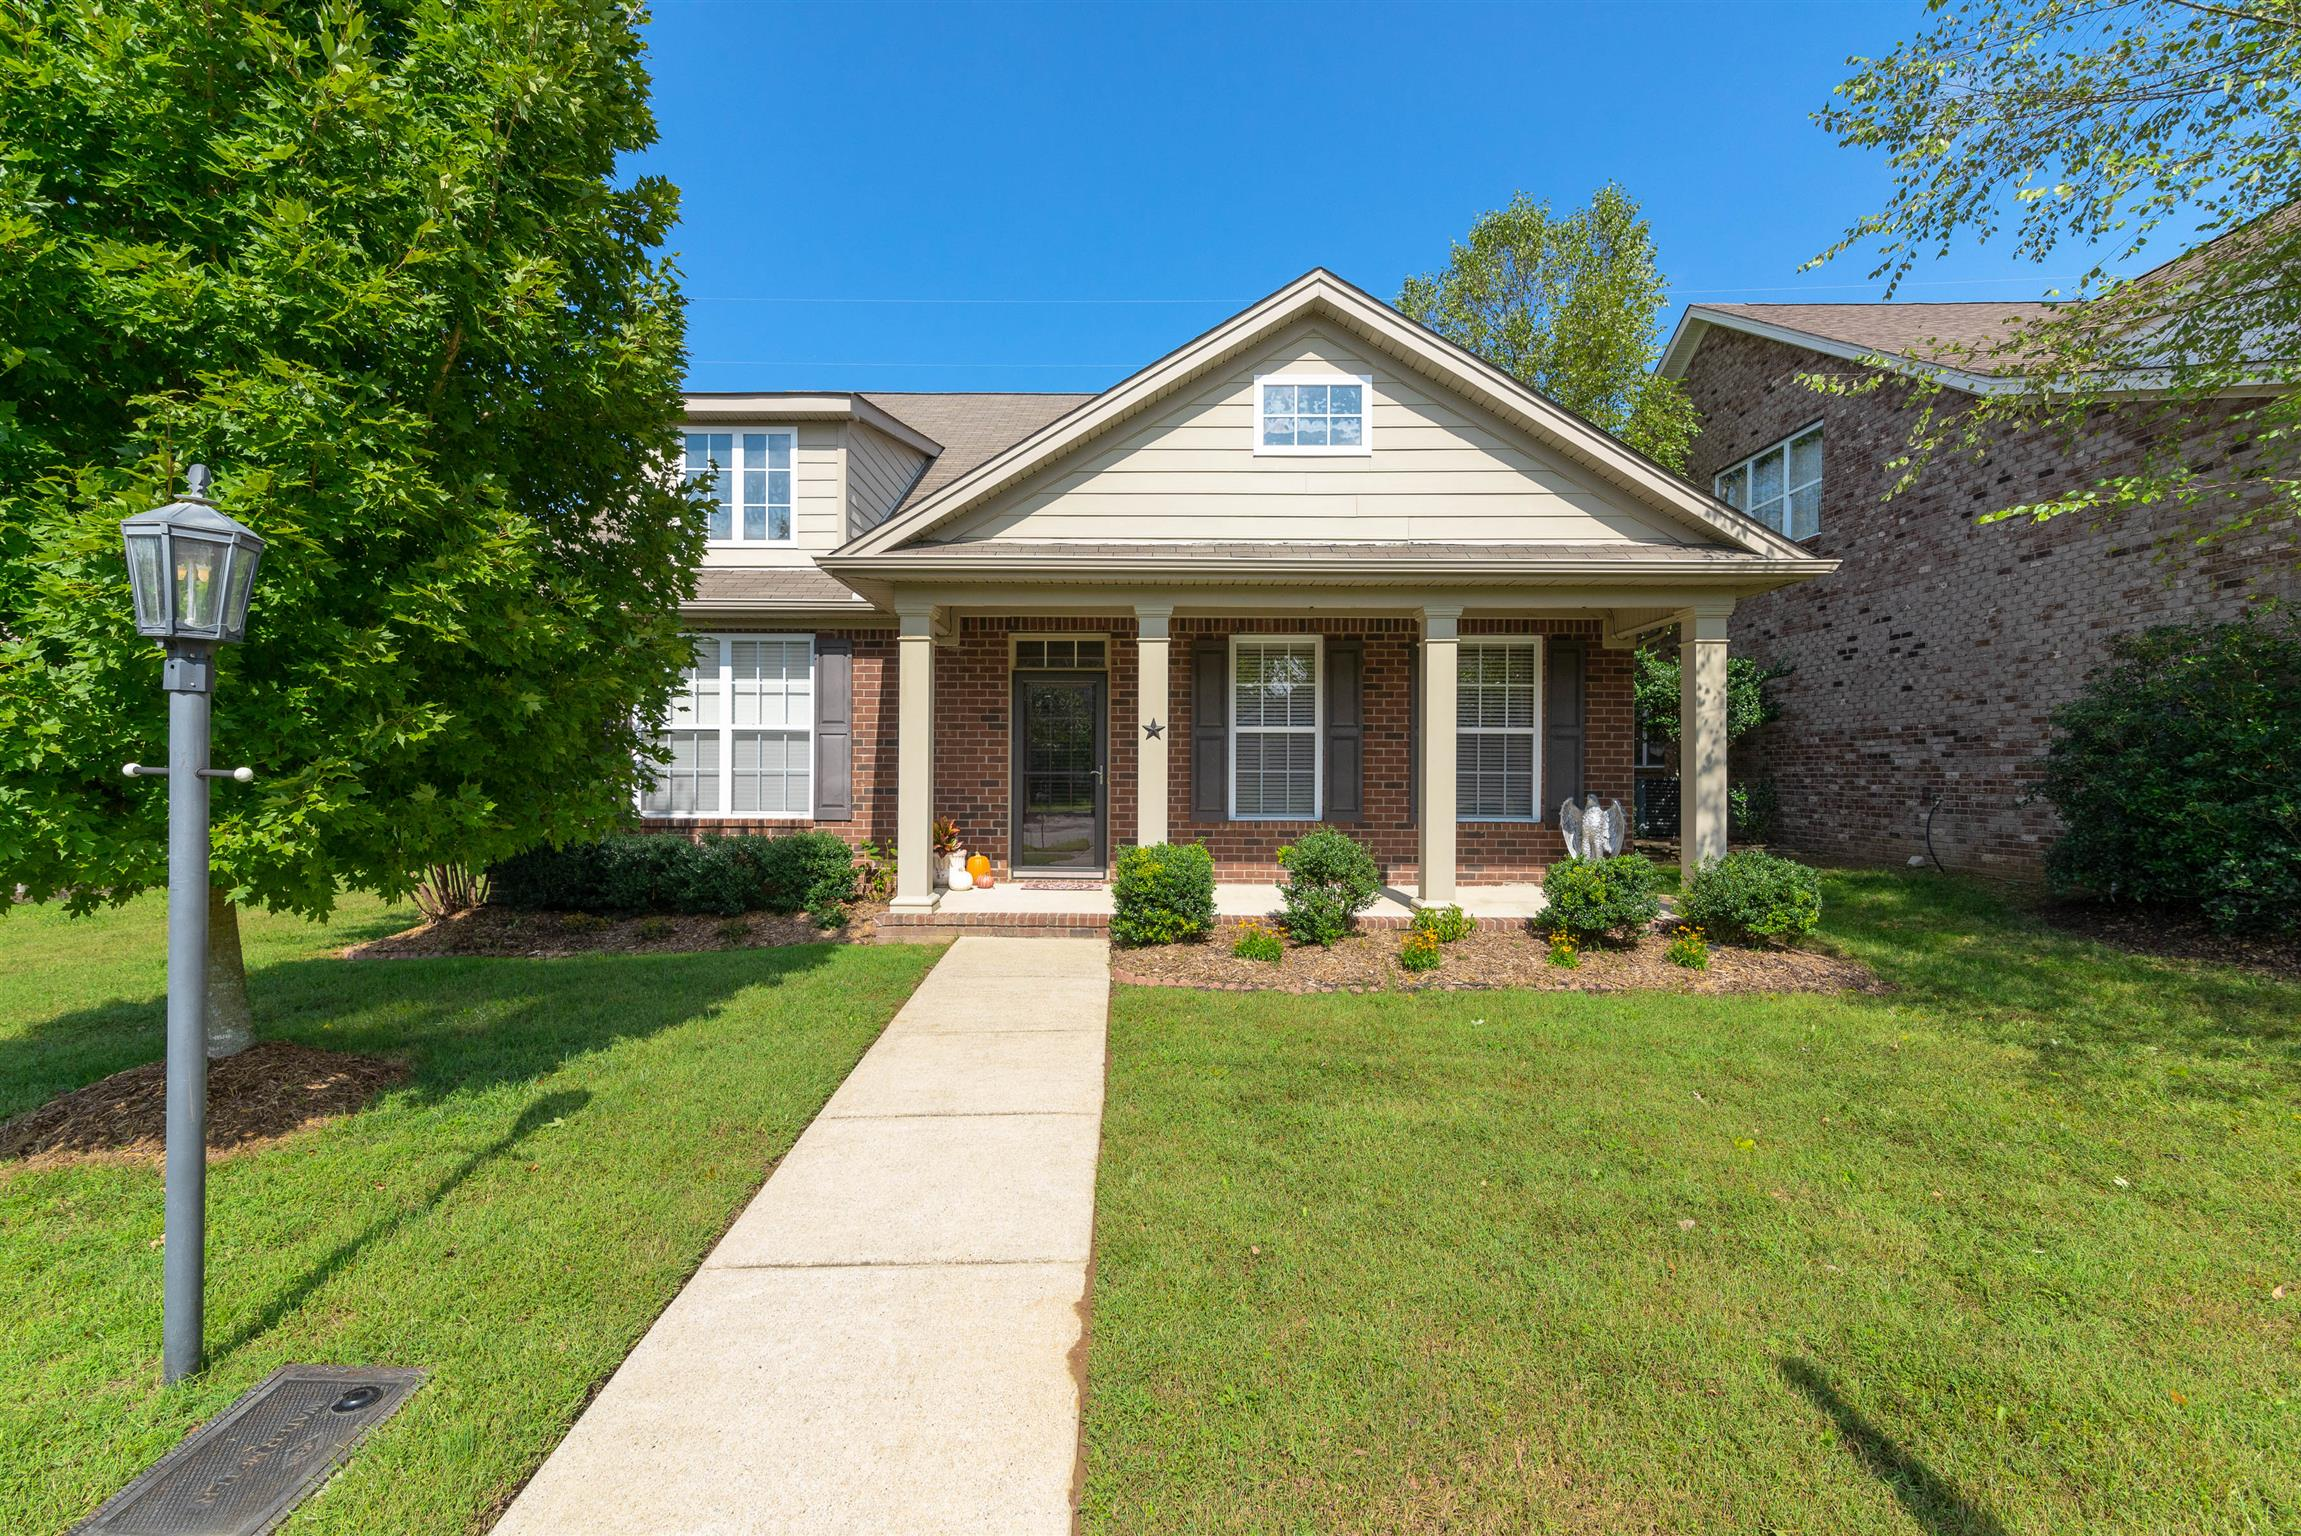 5244 New John Hagar Rd, Hermitage in Davidson County County, TN 37076 Home for Sale